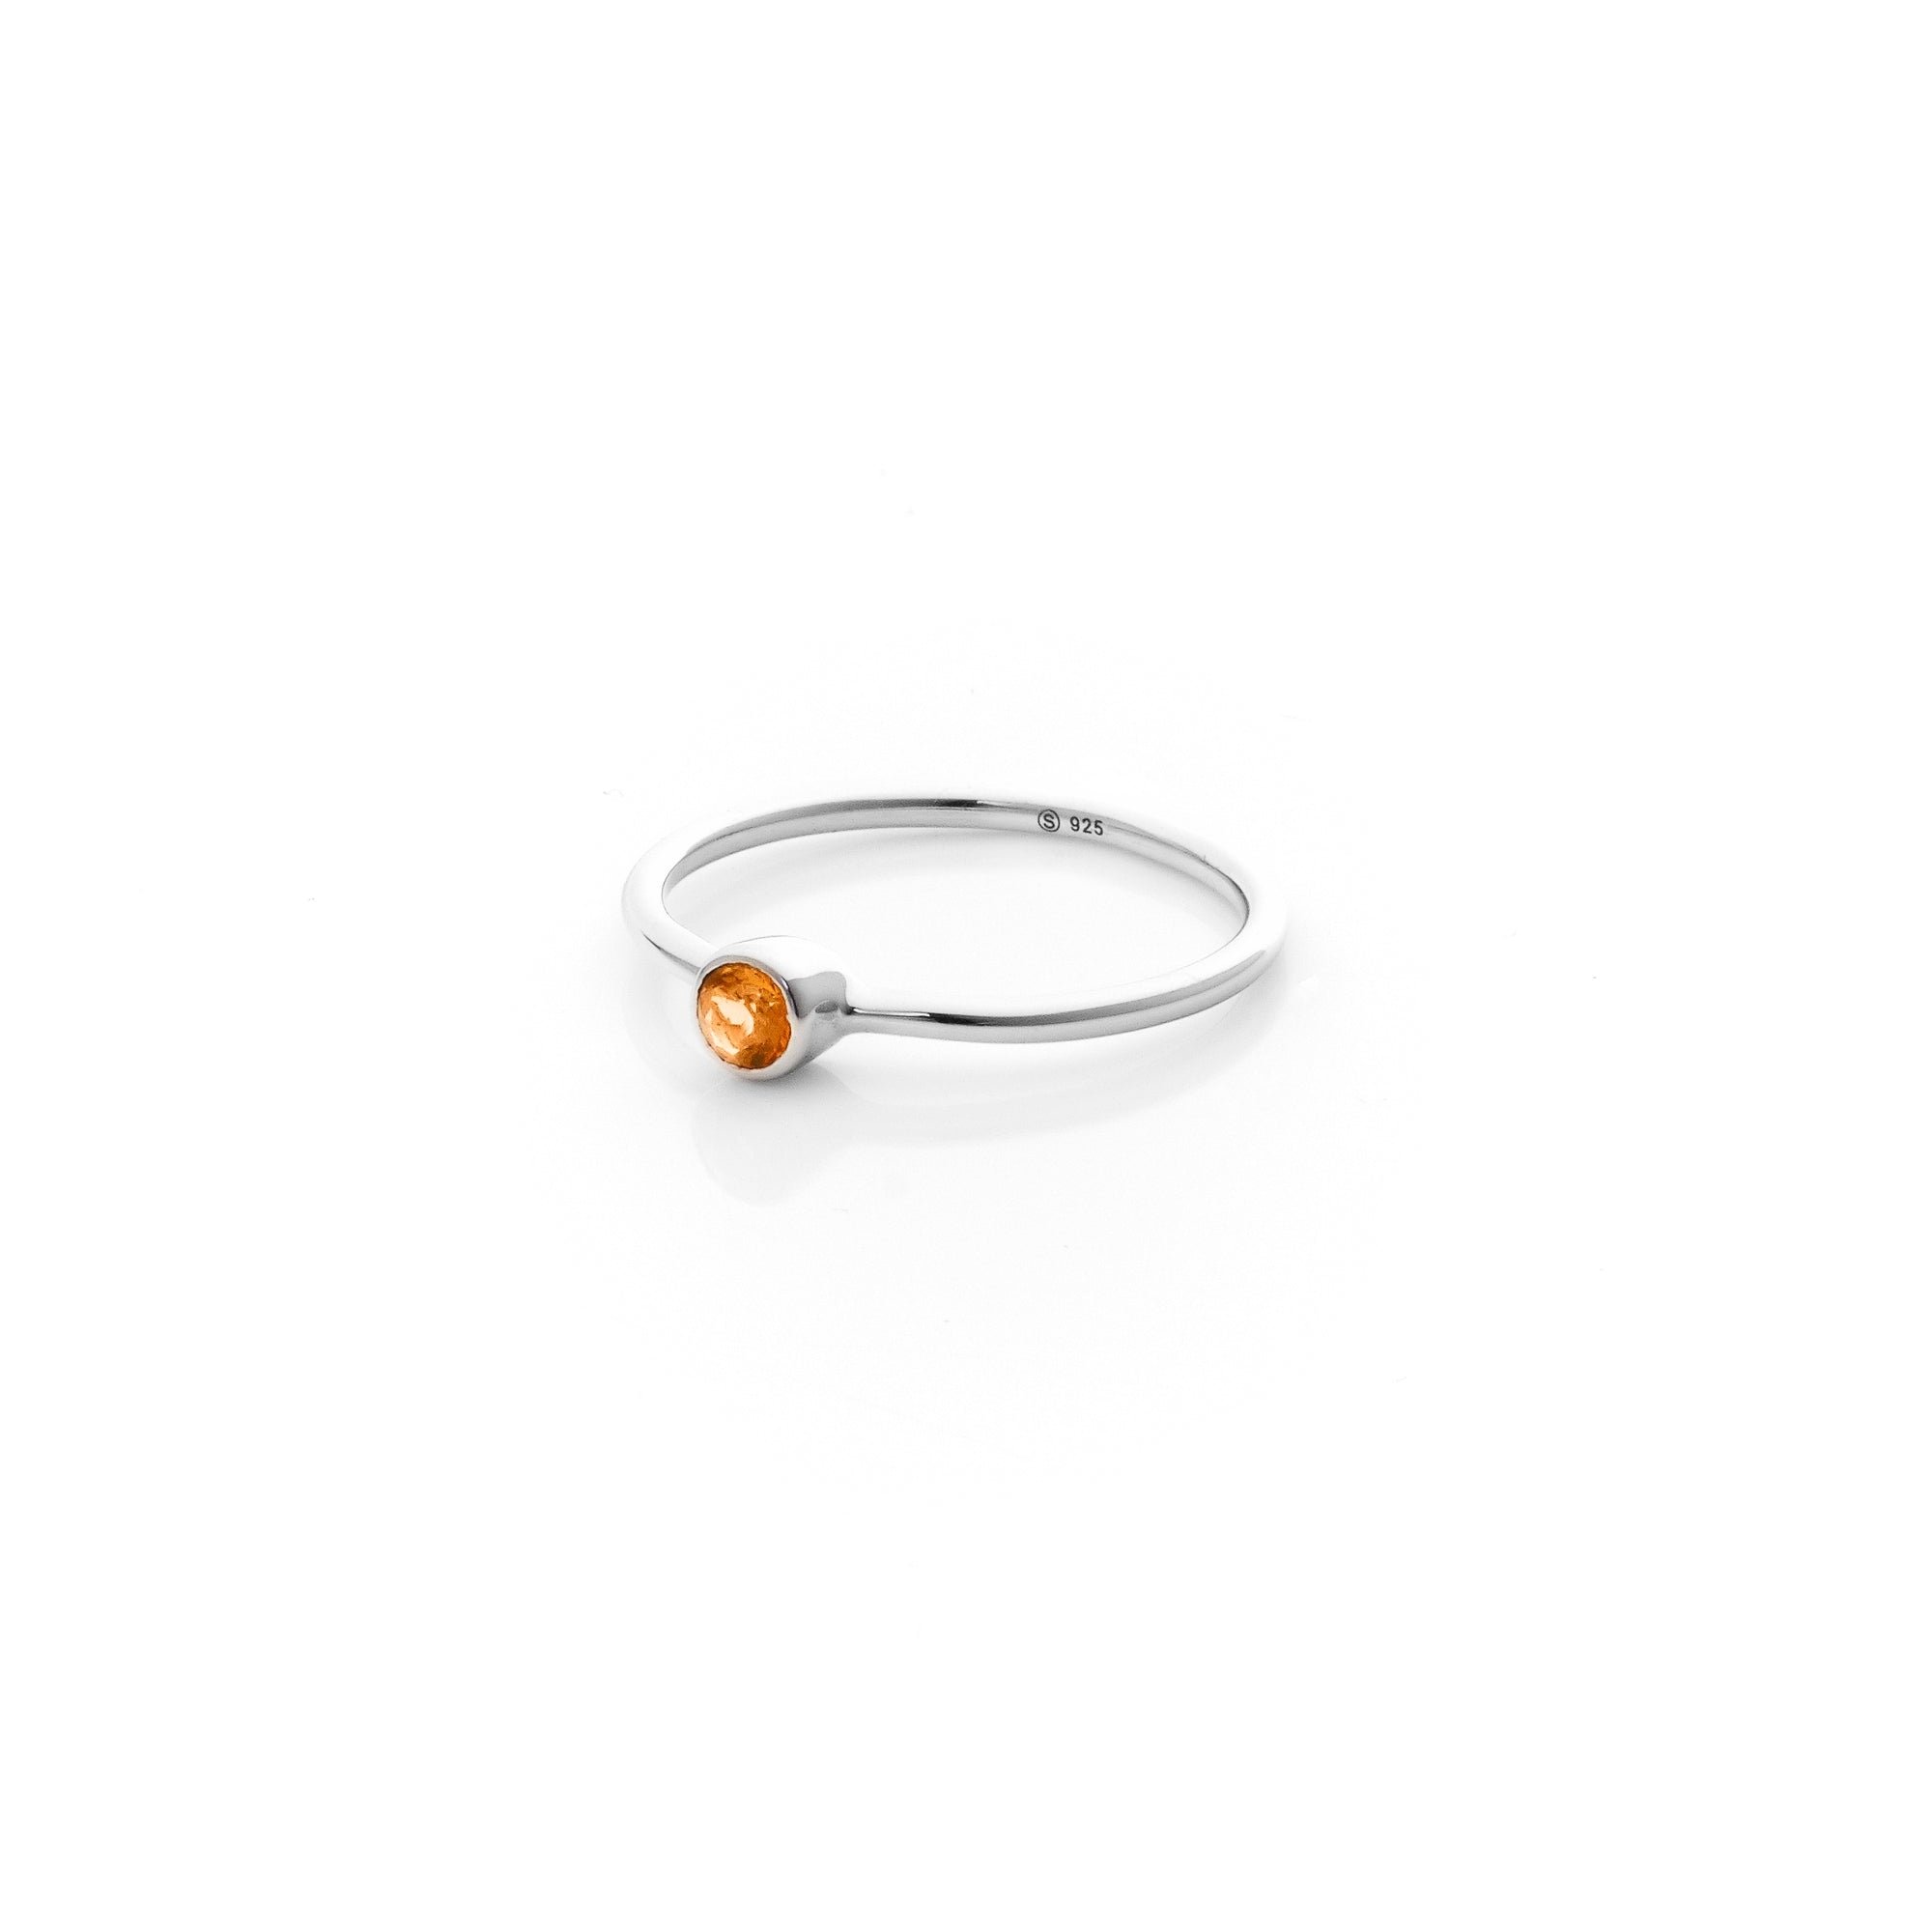 Silk&Steel Jewellery Axis Stacker ring Citrine Gemstone Pistil Ring